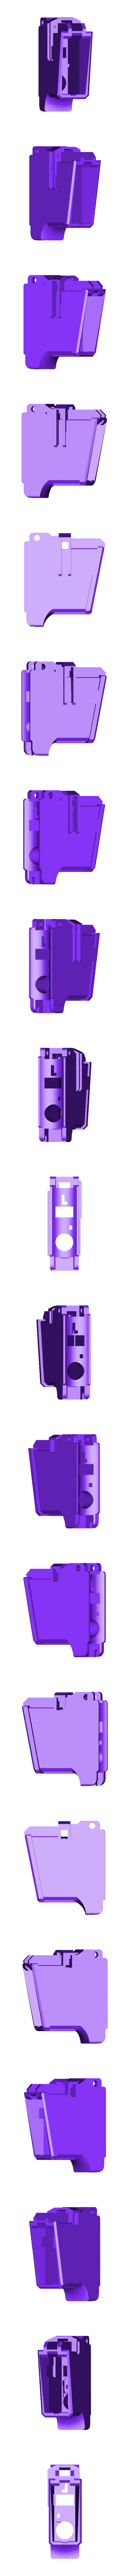 TMC_TO_MCS_BOLT_magwell_v4.stl Download free STL file Tippmann TMC to MCS BOLT or Blizzard Adapter • Template to 3D print, UntangleART